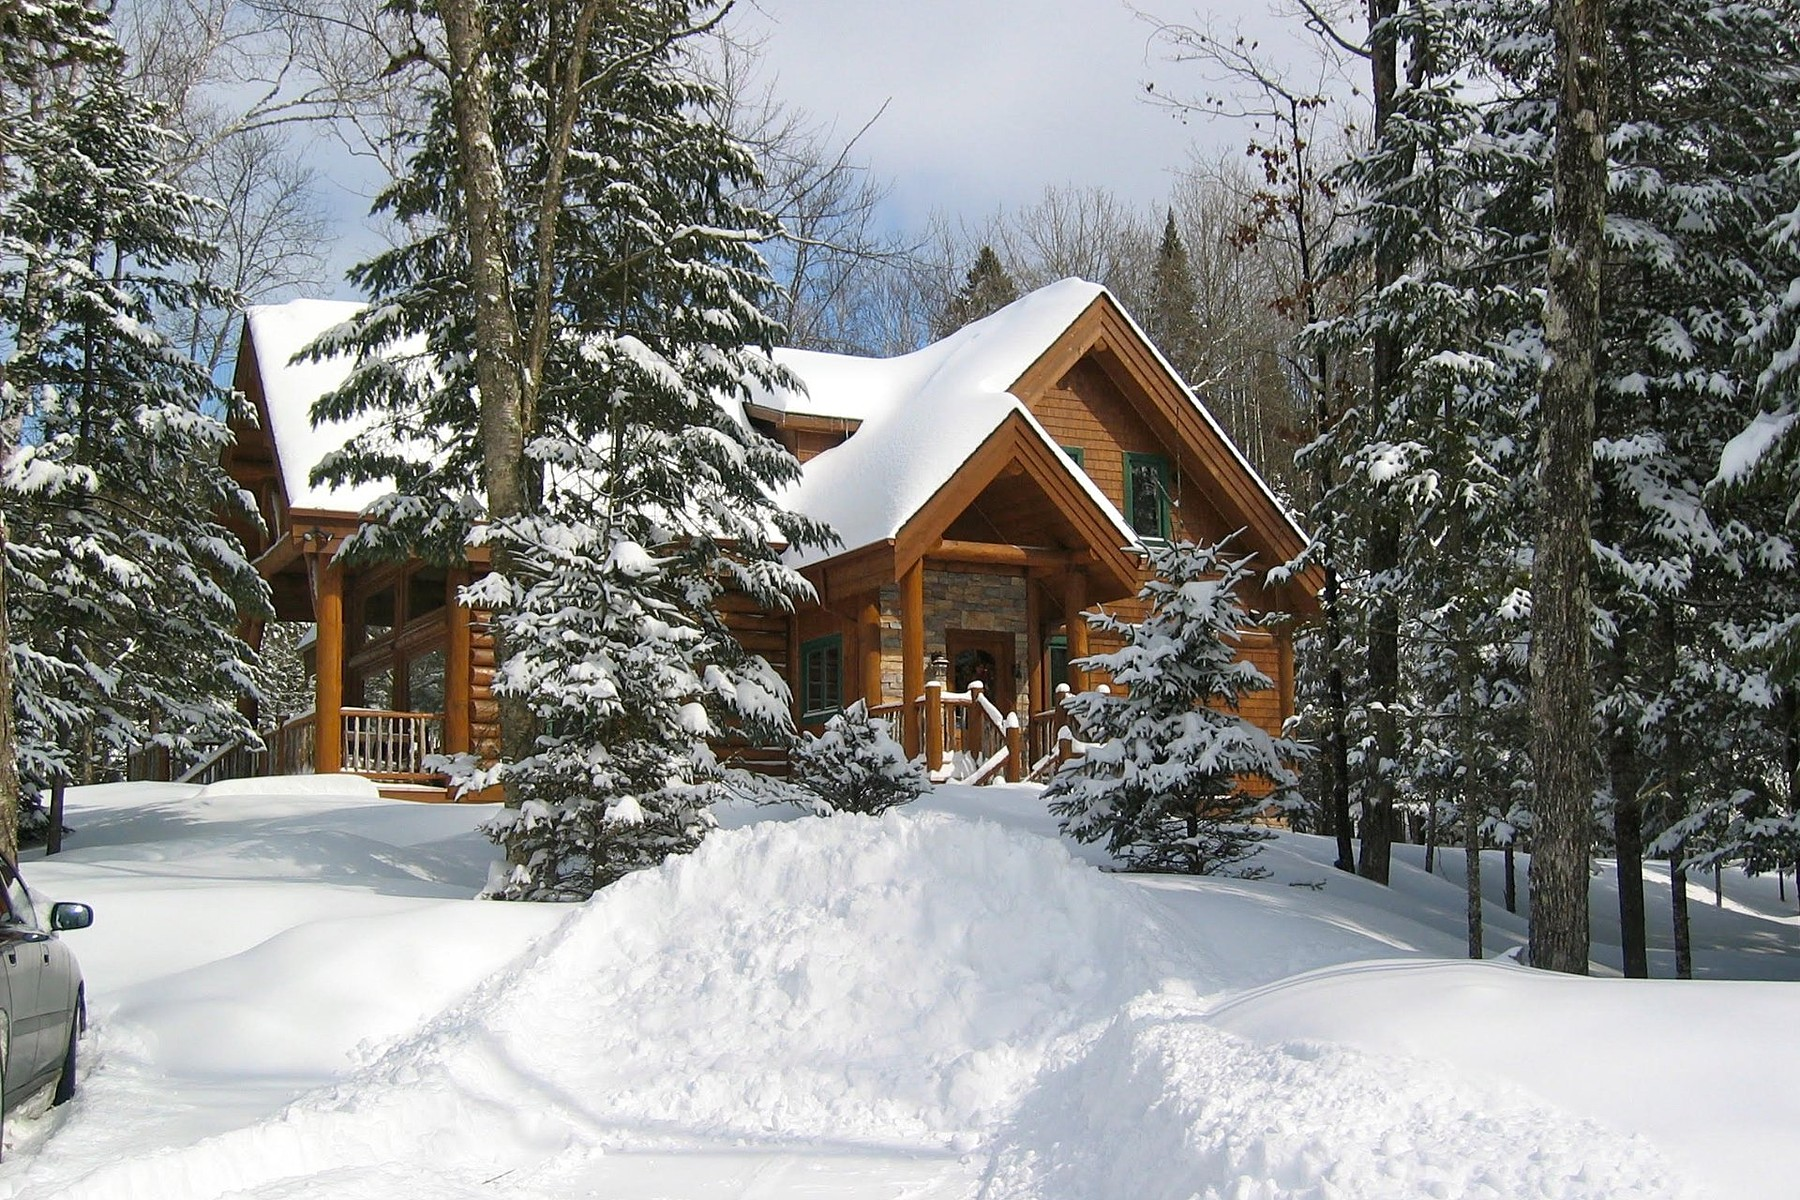 Single Family Home for Sale at Mont-Tremblant, Laurentides 251 Ch. Champagne Mont-Tremblant, Quebec, J8E1V4 Canada